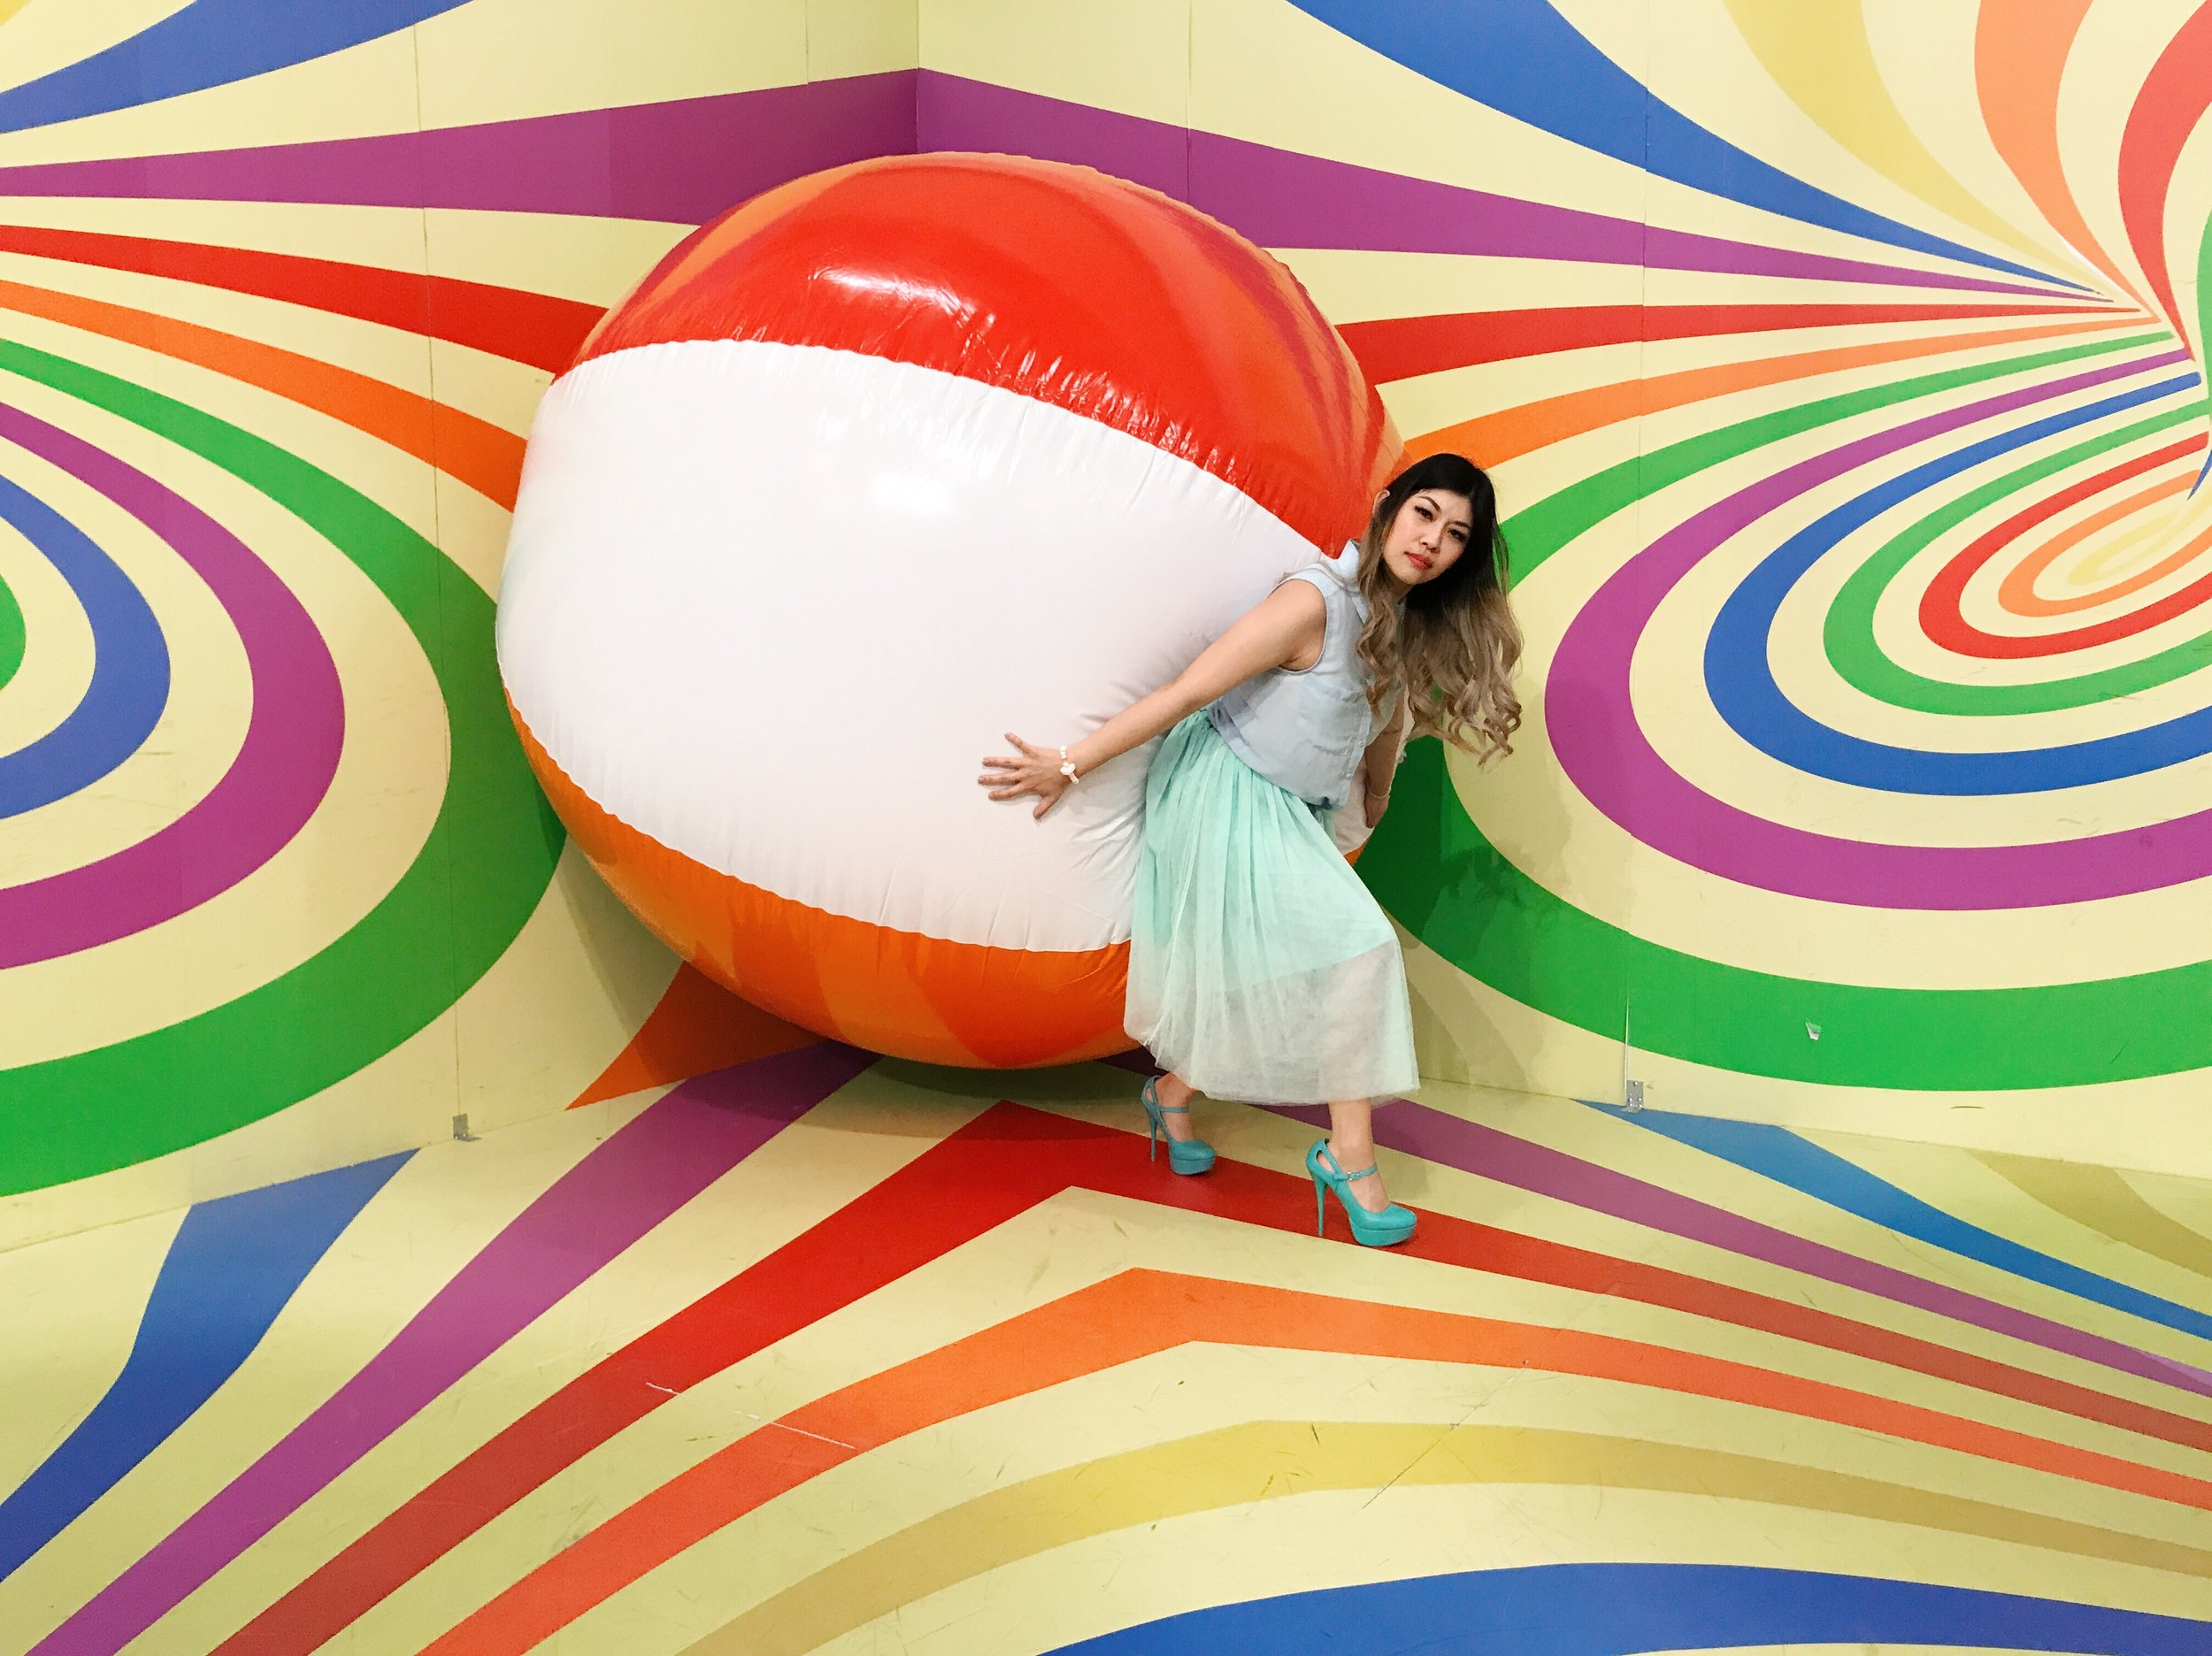 Giant Beach Ball Candytopia